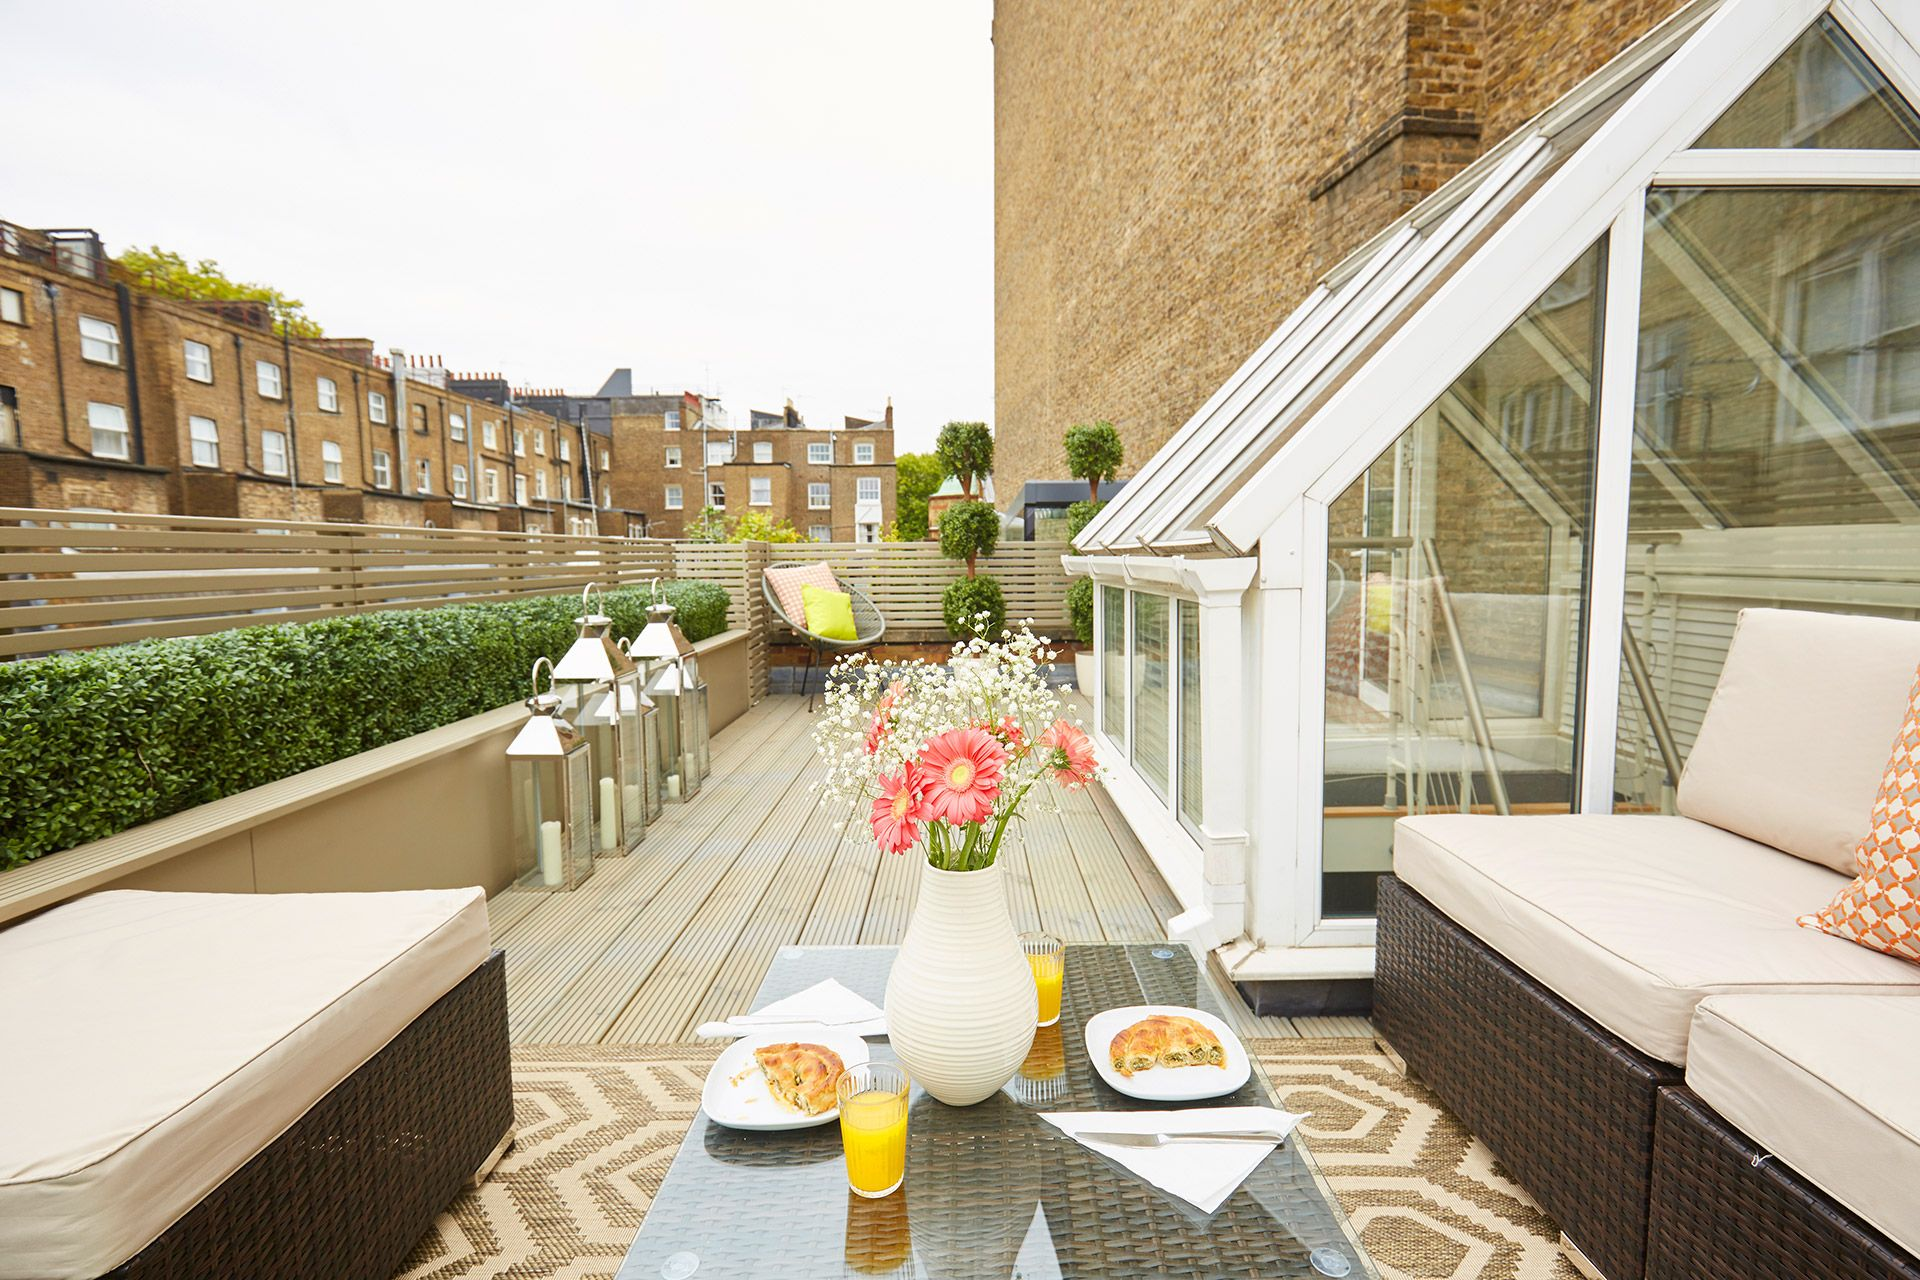 View of the terrace of the Danebury vacation rental offered by London Perfect